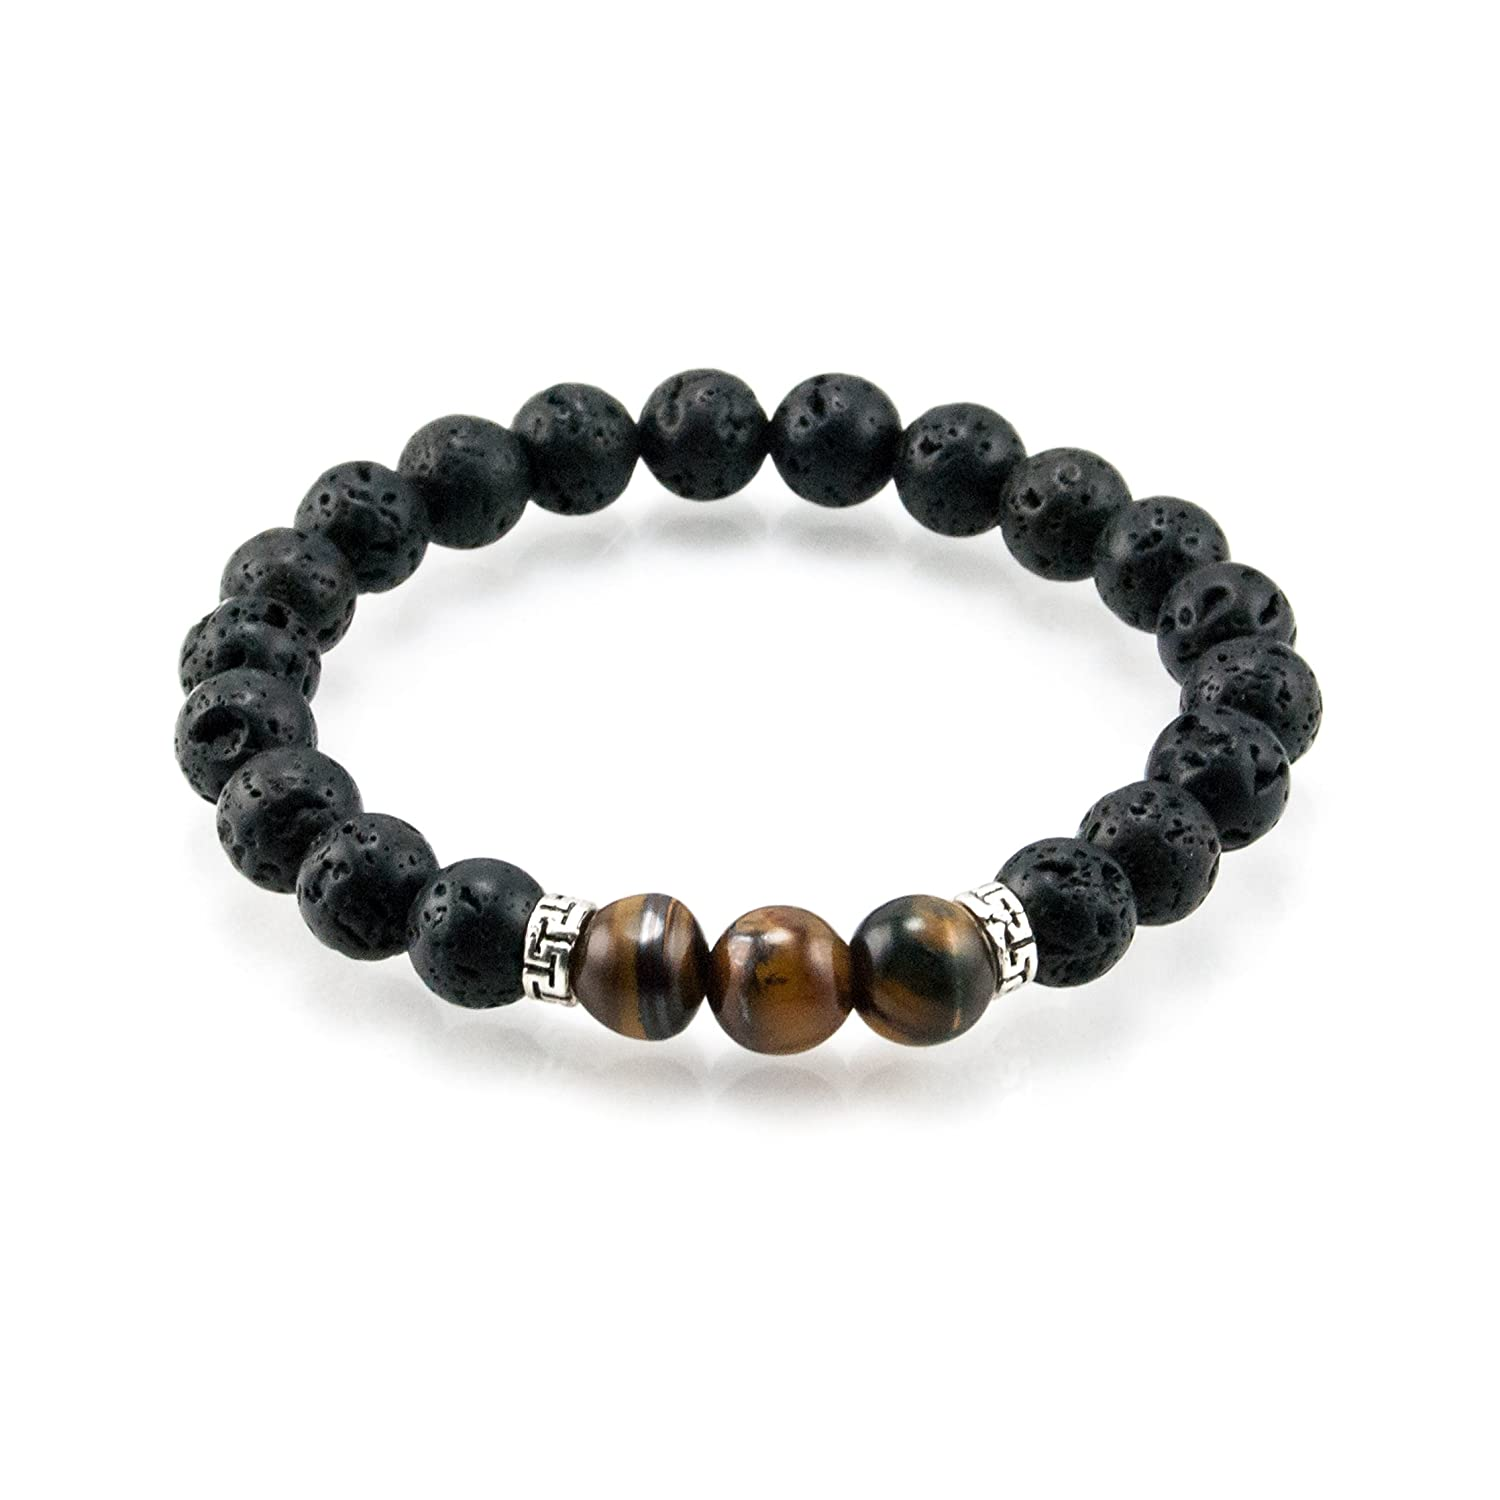 Oil Diffuser Lava Rock Beaded Stretch Bracelet with Tiger's Eye Gemstone Beads